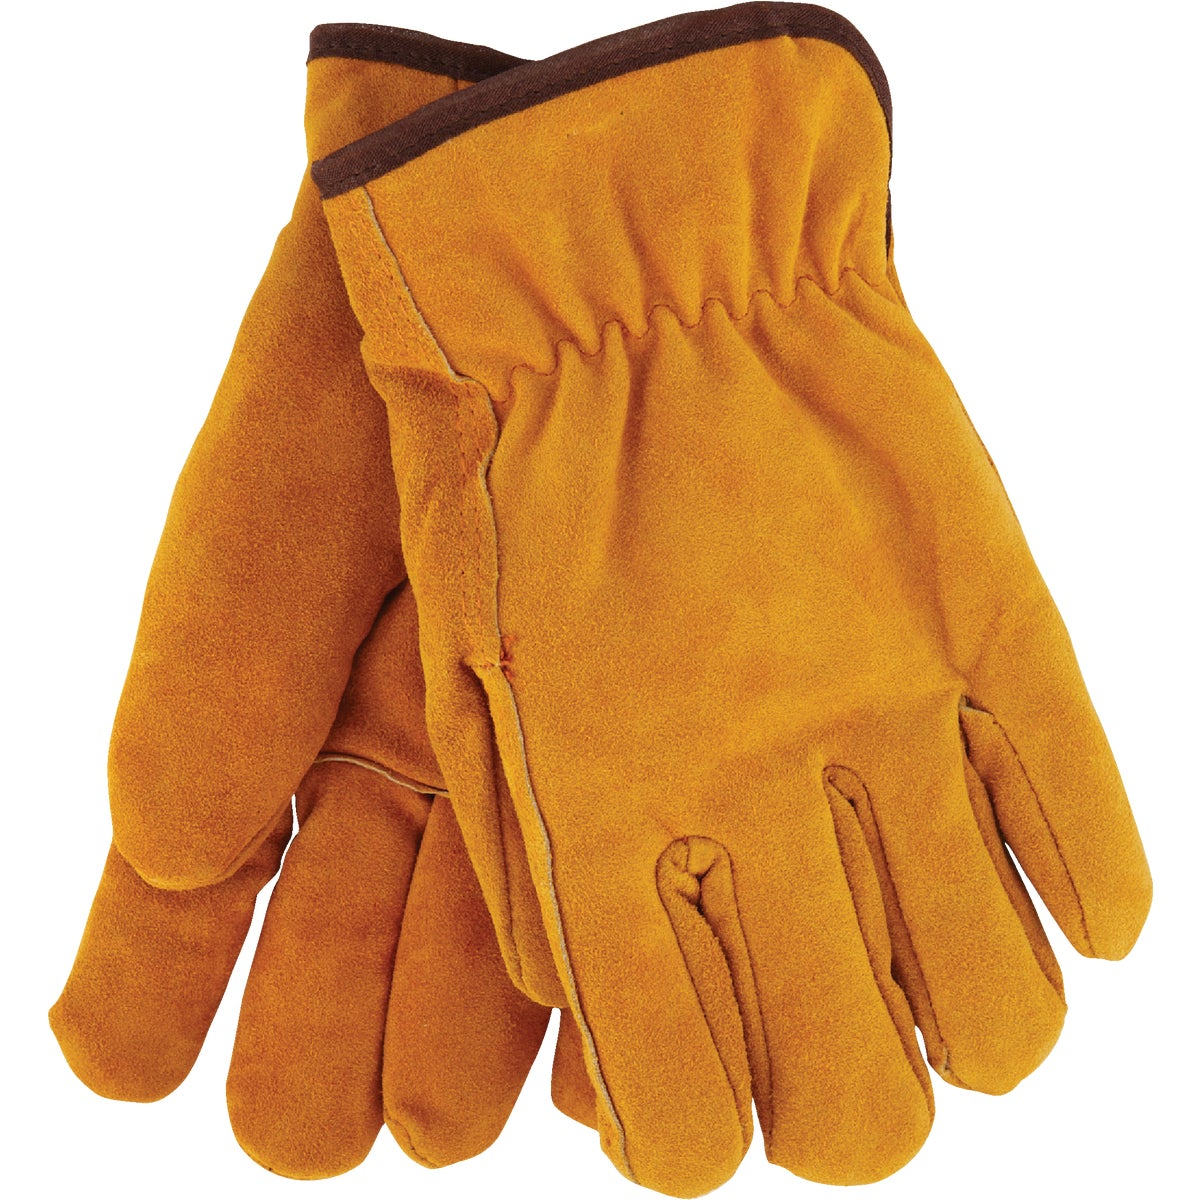 LRG LEATHER LINED GLOVE